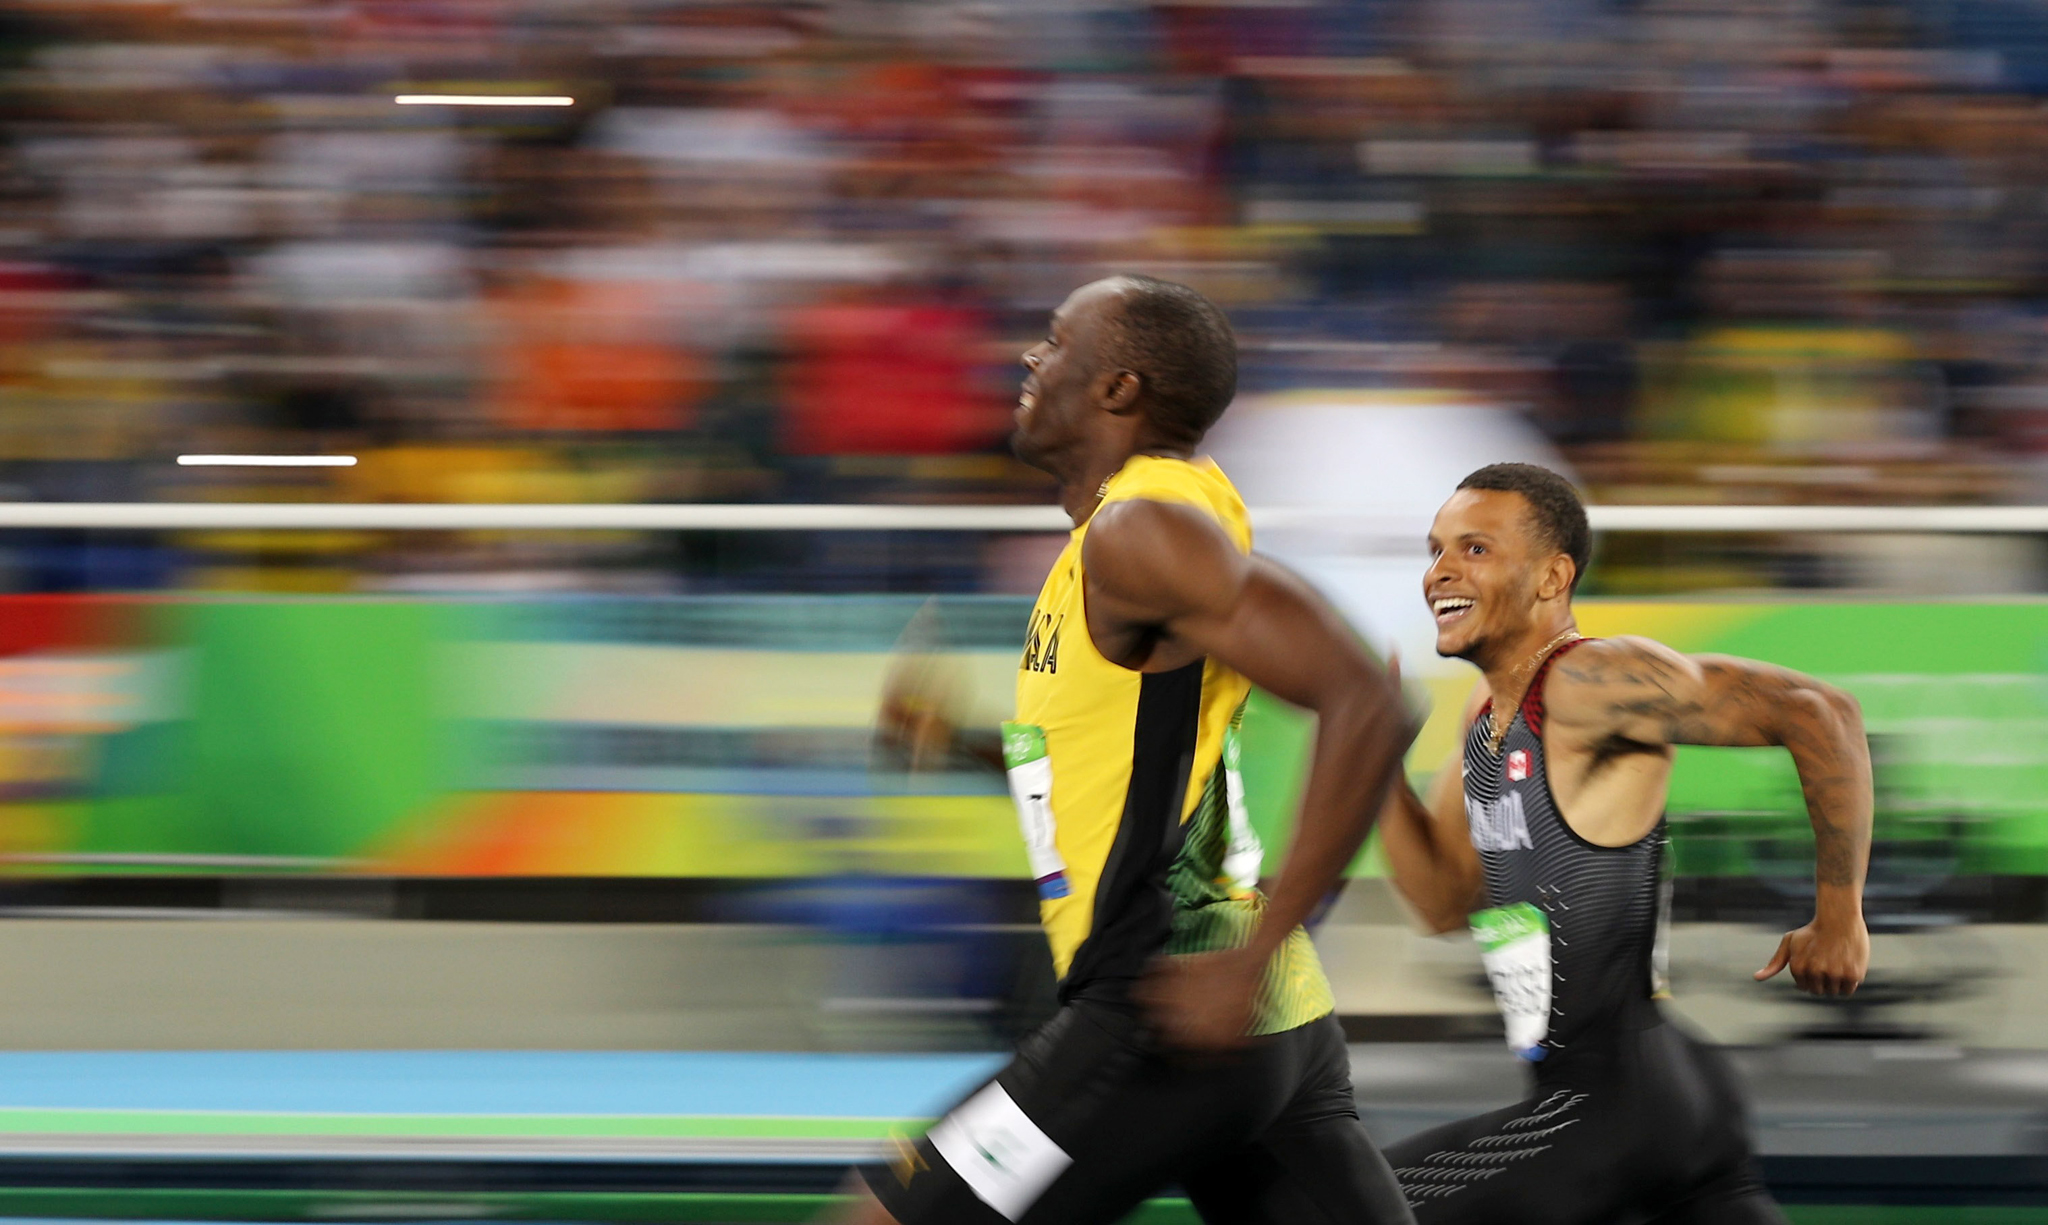 Athletics - Semifinal - Men's 200m Semifinals - Olympic Stadium - Rio de Janeiro, Brazil - 17/08/2016. Usain Bolt (JAM) of Jamaica and Andre De Grasse (CAN) of Canada smile as they compete